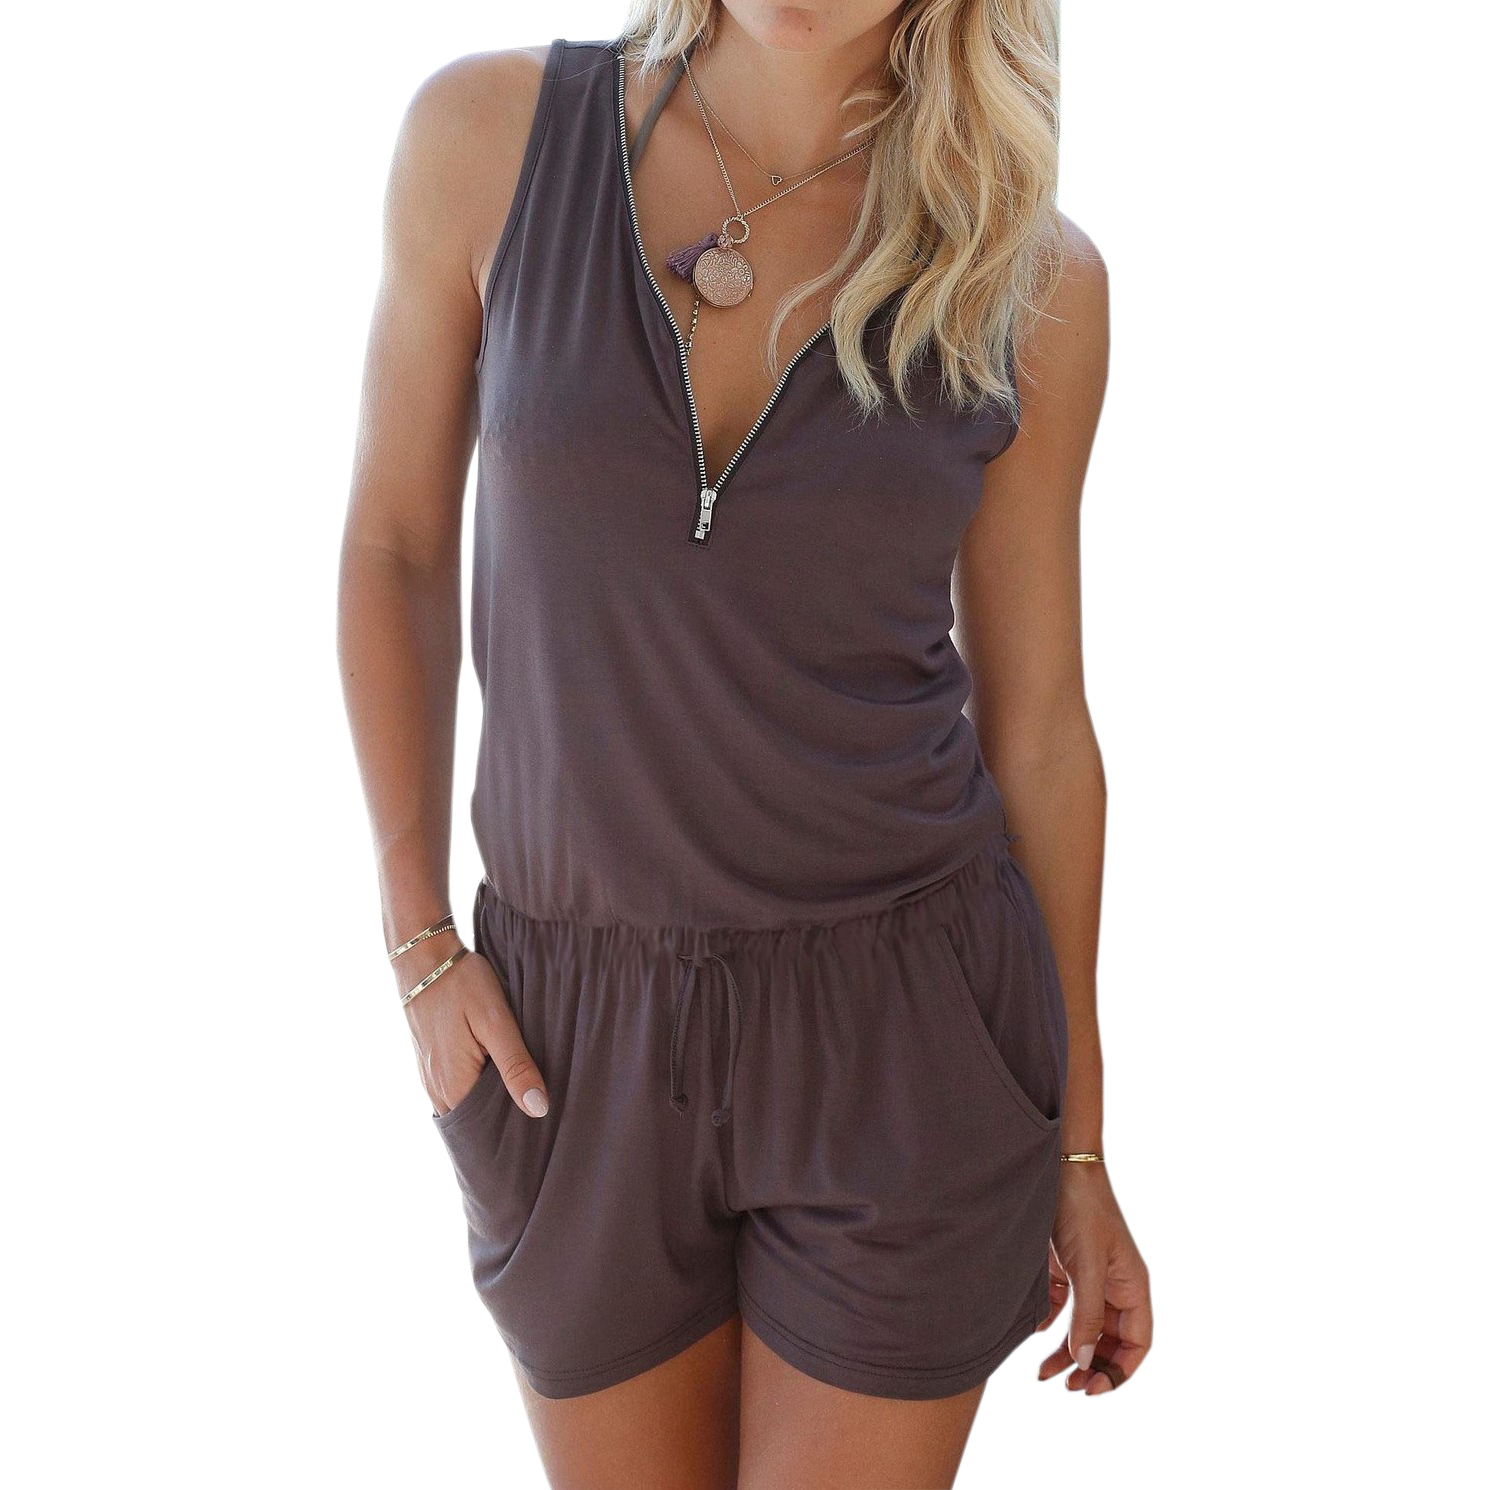 Beach Summer Playsuits Sleeveless V neck Women Jumpsuits Shorts Solid Pockets Zipper Casual Office Playsuits Overalls